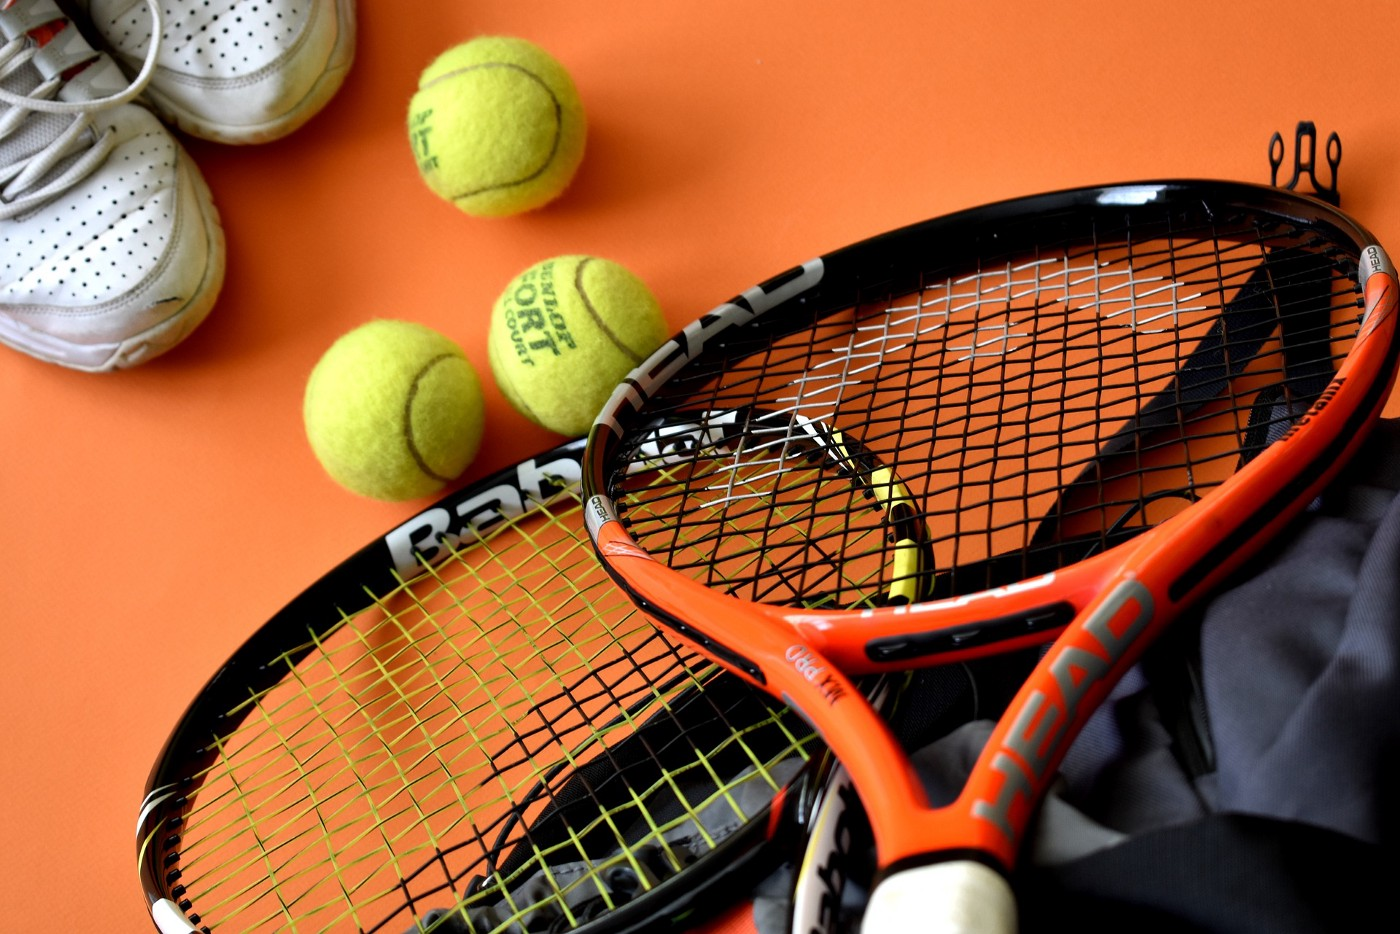 Improve tennis rating system based on Glicko-2 system